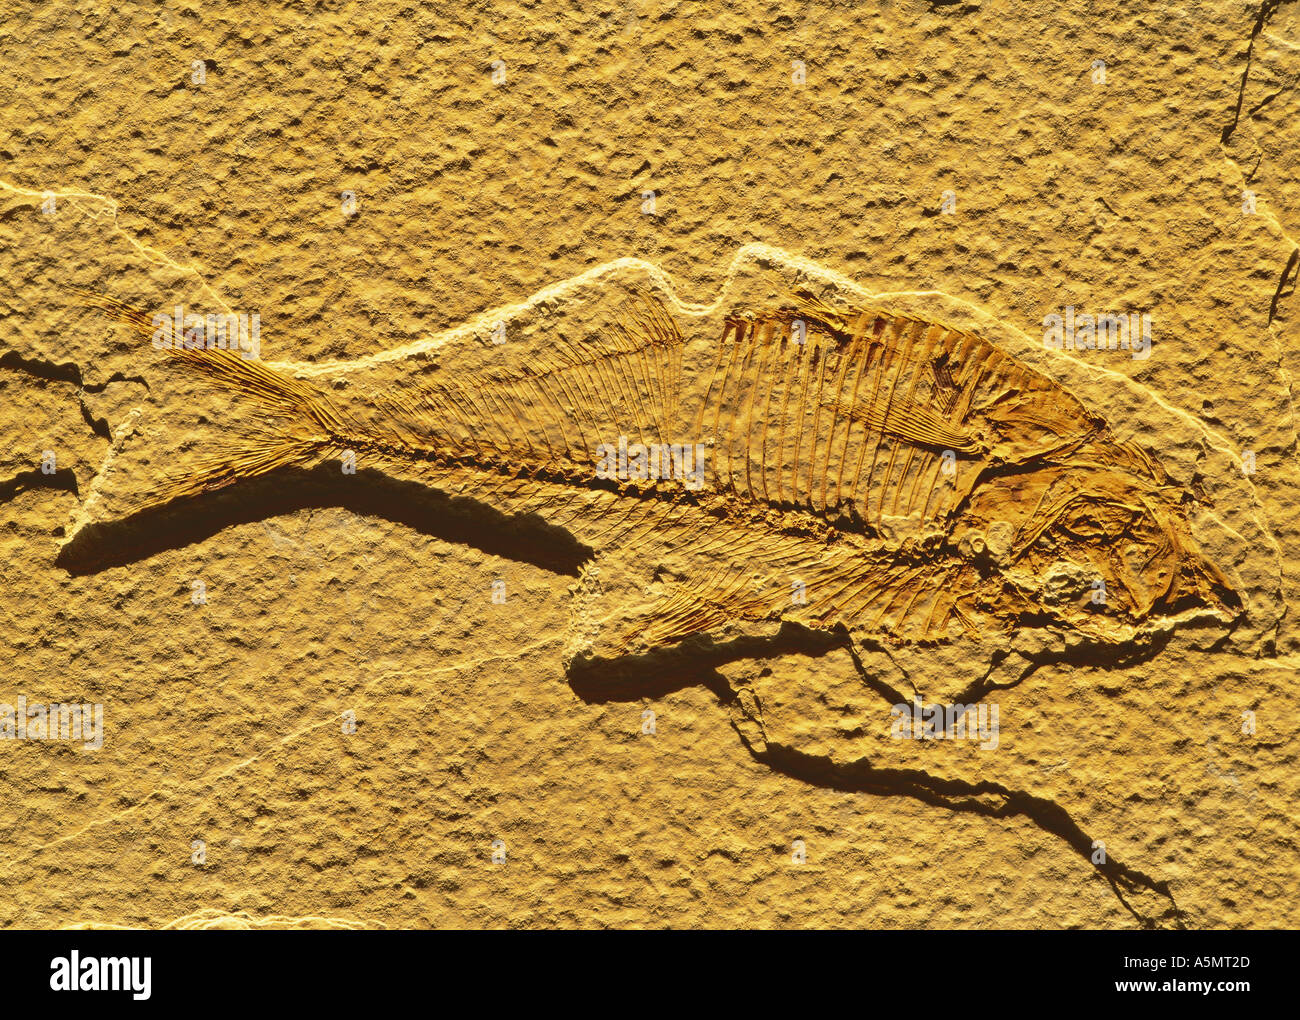 Fish fossil from Green River formation Wyoming USA - Stock Image